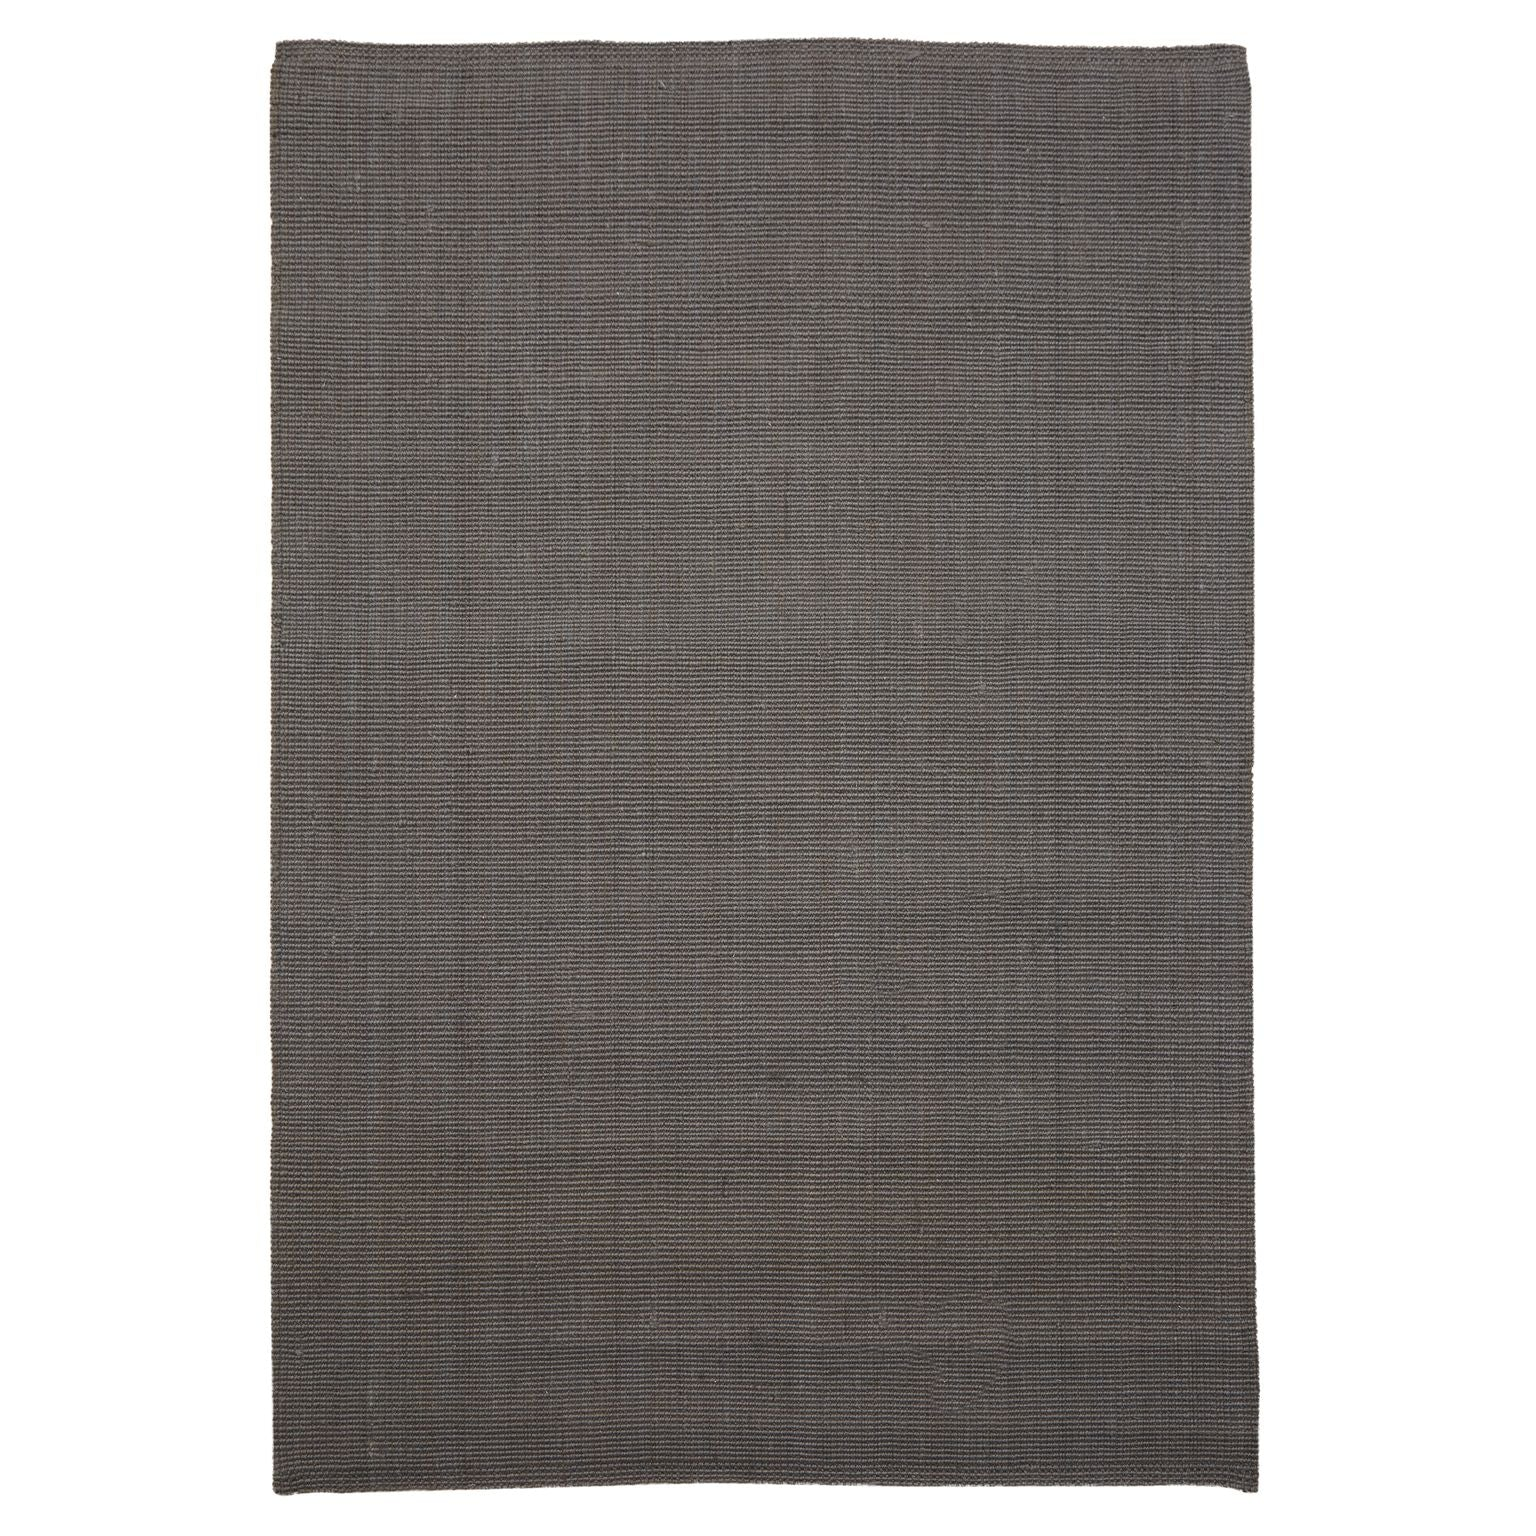 Handwoven Light Grey Jute Rug